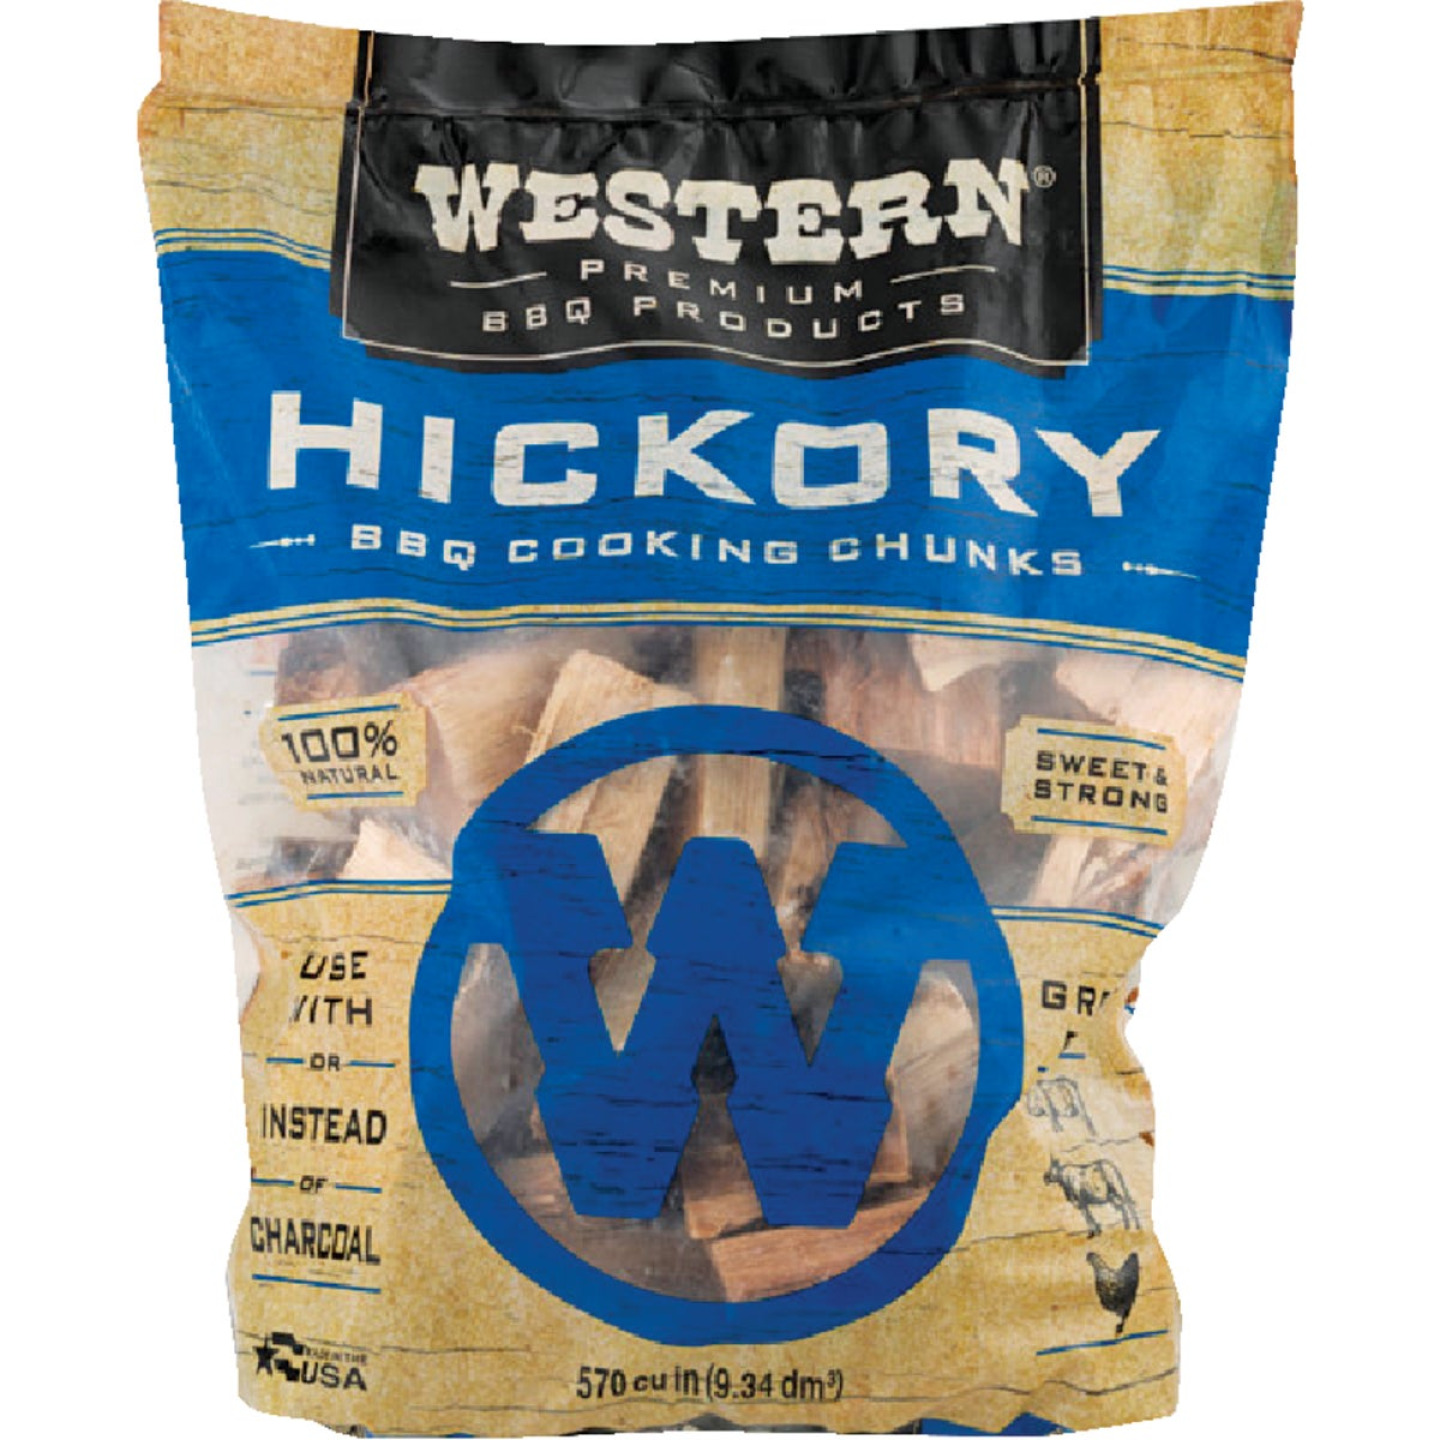 Western 6 Lb. Hickory Wood Smoking Chunks Image 1